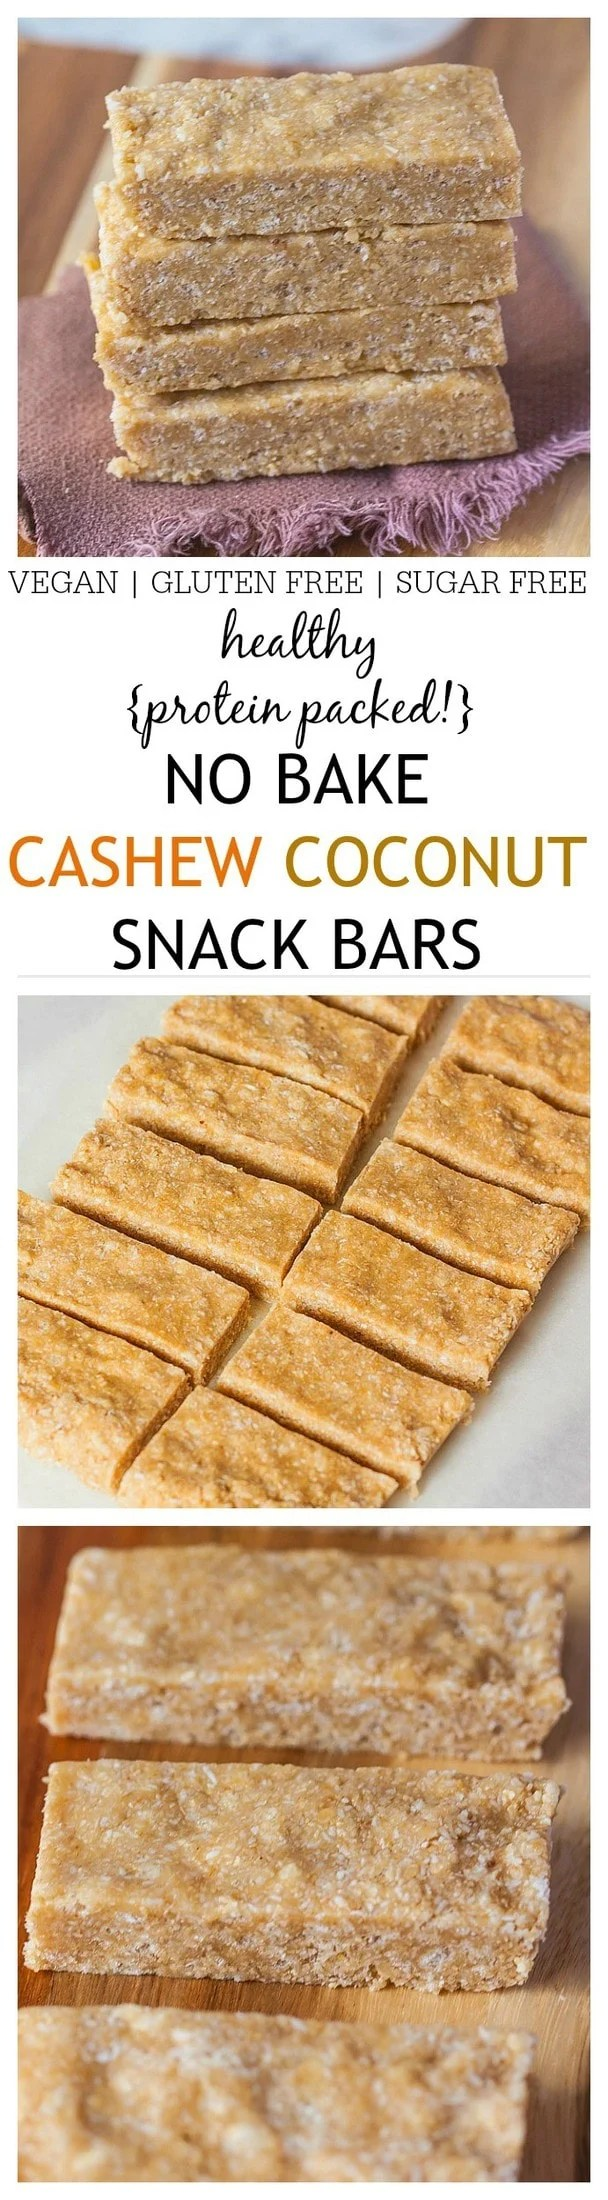 Healthy {Protein Packed} No Bake Cashew Coconut Snack Bars- A healthy, delicious, no bake protein bar which uses 1 bowl and takes 5 minutes- No food processor necessary! Perfect for on the go snacking and suitable for those following a gluten free, dairy free or vegan diet! @thebigmansworld -thebigmansworld.com